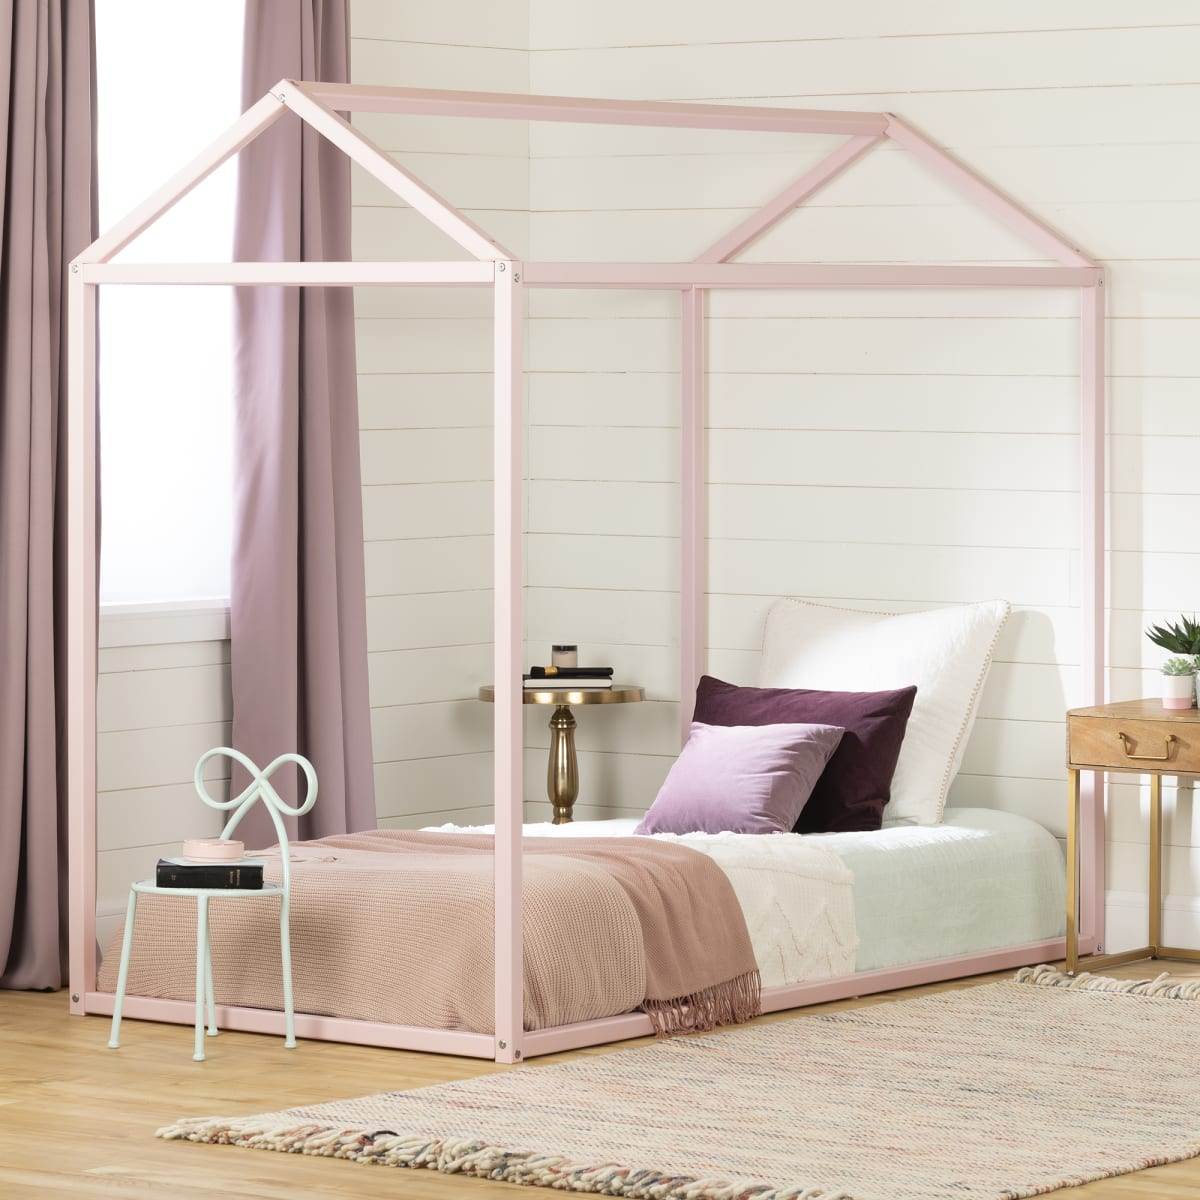 Sweedi House Bed Bed Kids Bedroom Baby And Kids Products South Shore Furniture Us Furniture For Sale Designed And Manufactured In North America